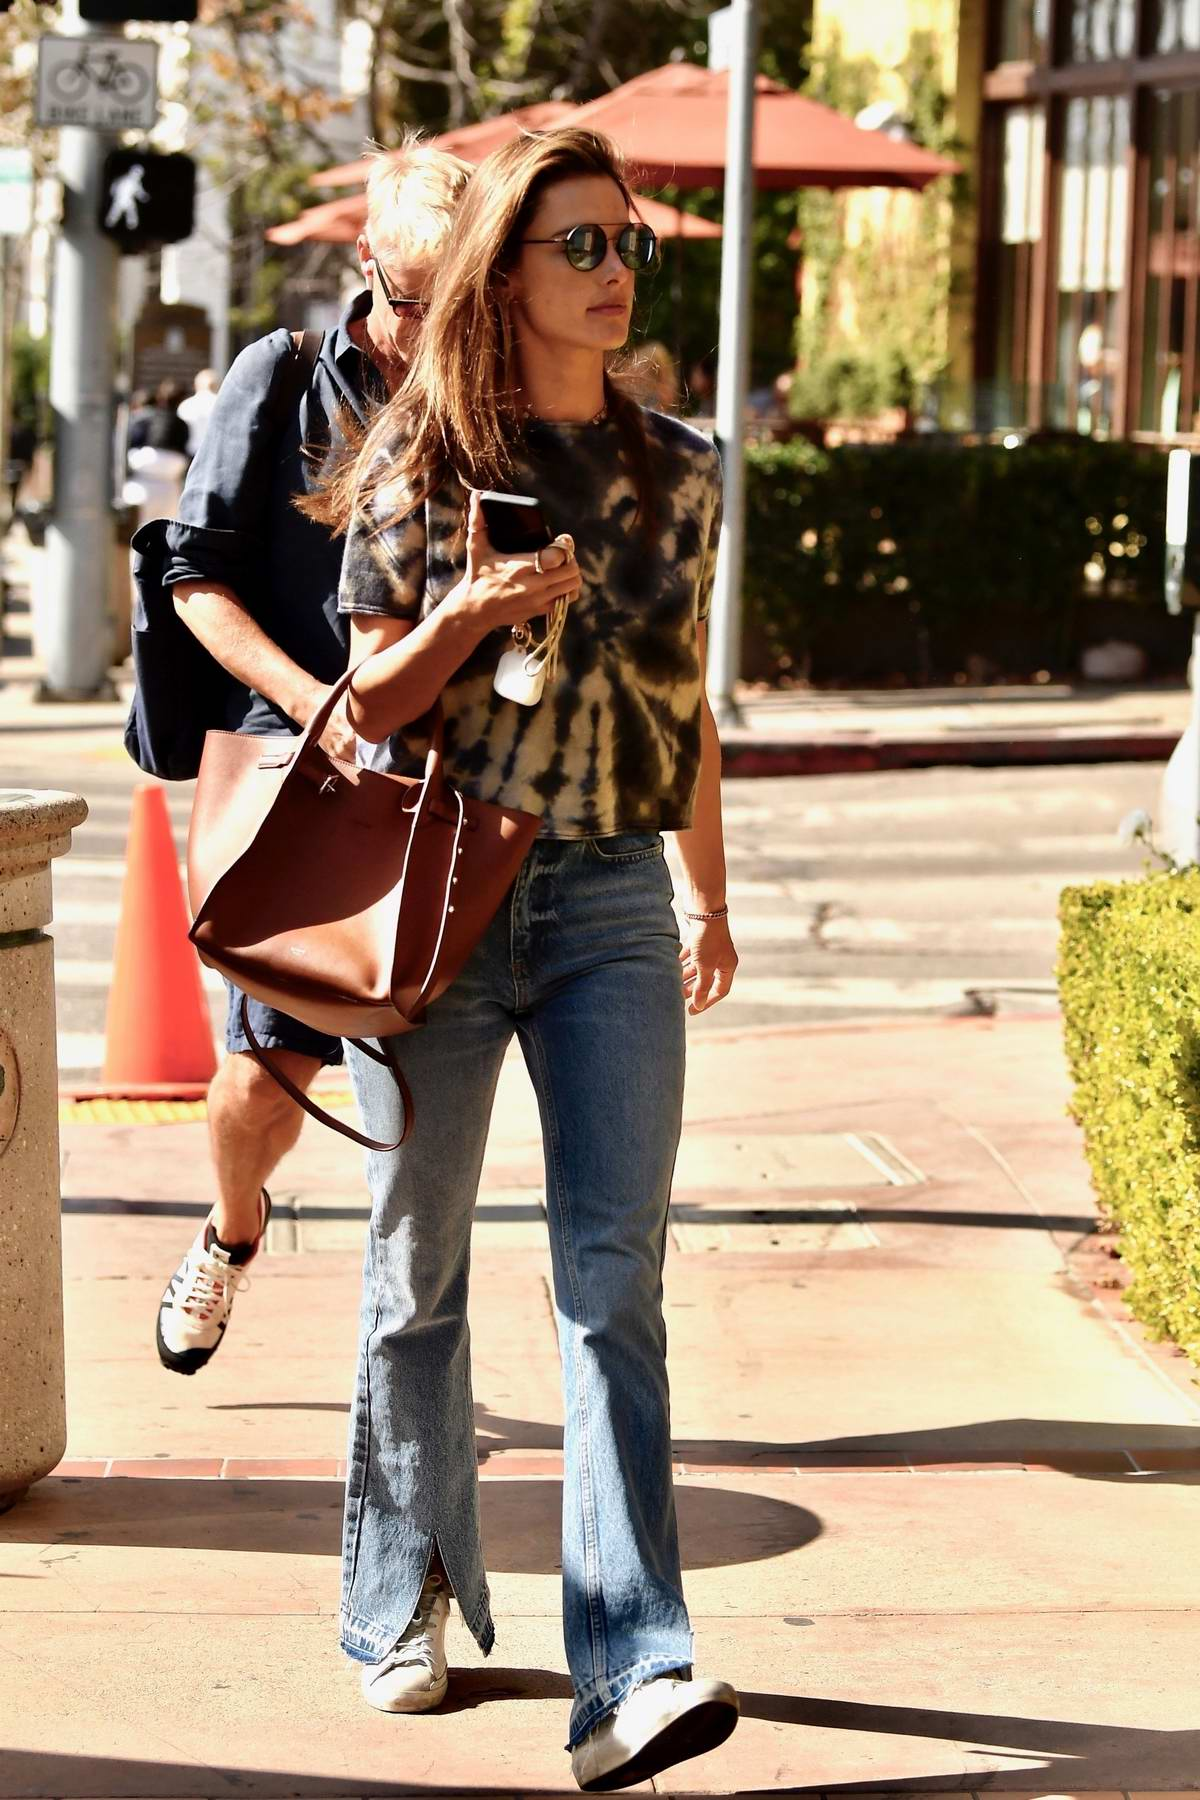 Alessandra Ambrosio rocks a tie-dye top and flared jeans while out for lunch at Toscano in Brentwood, Los Angeles